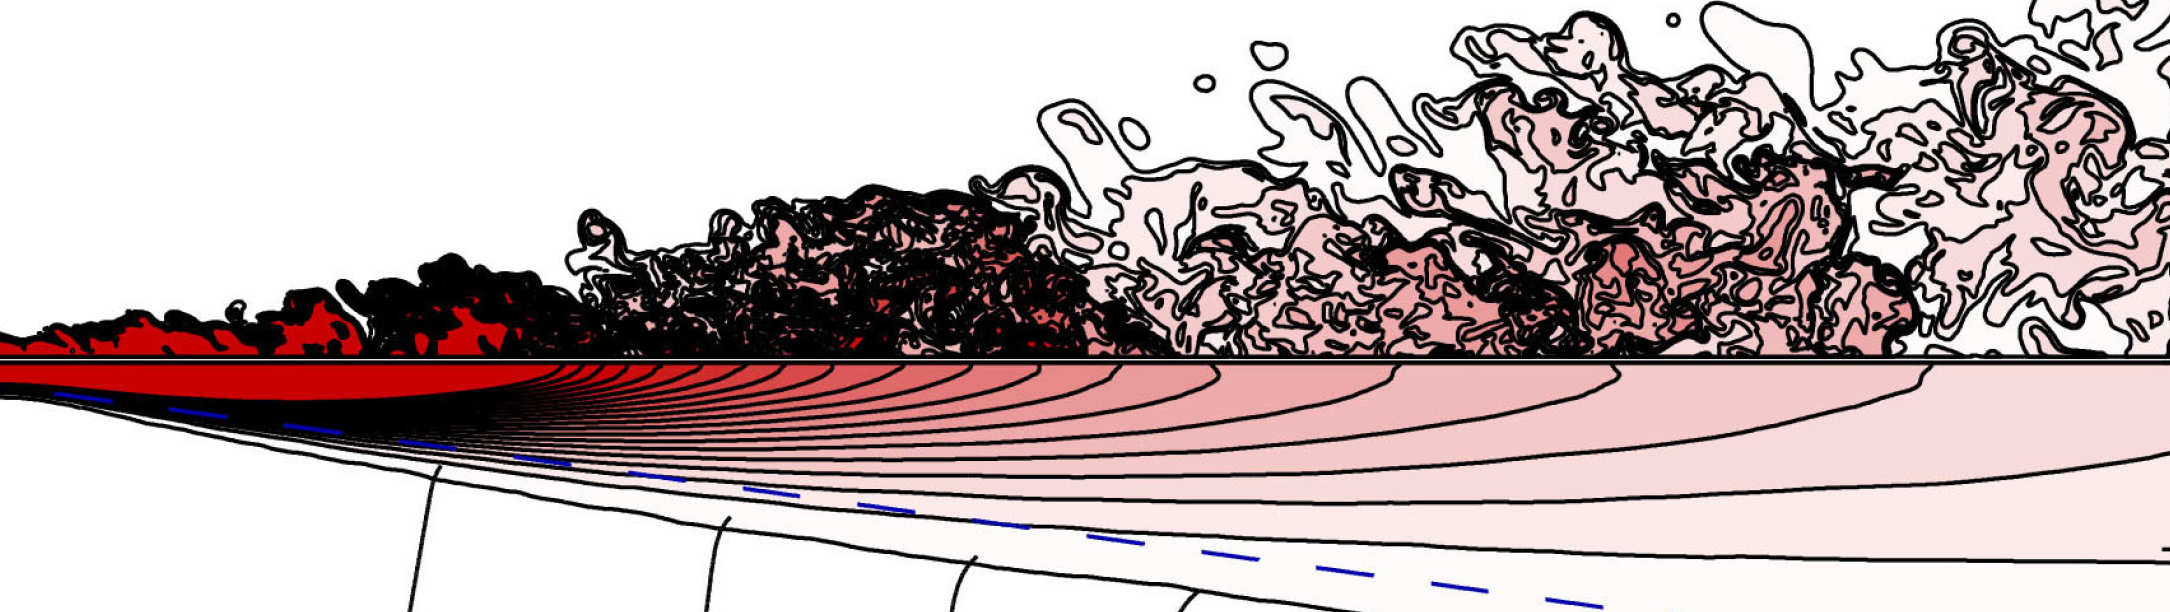 A two-dimensional simulation of the flow around a cylinder using the discrete vortex method (image courtesy of Yorgos Deskos)